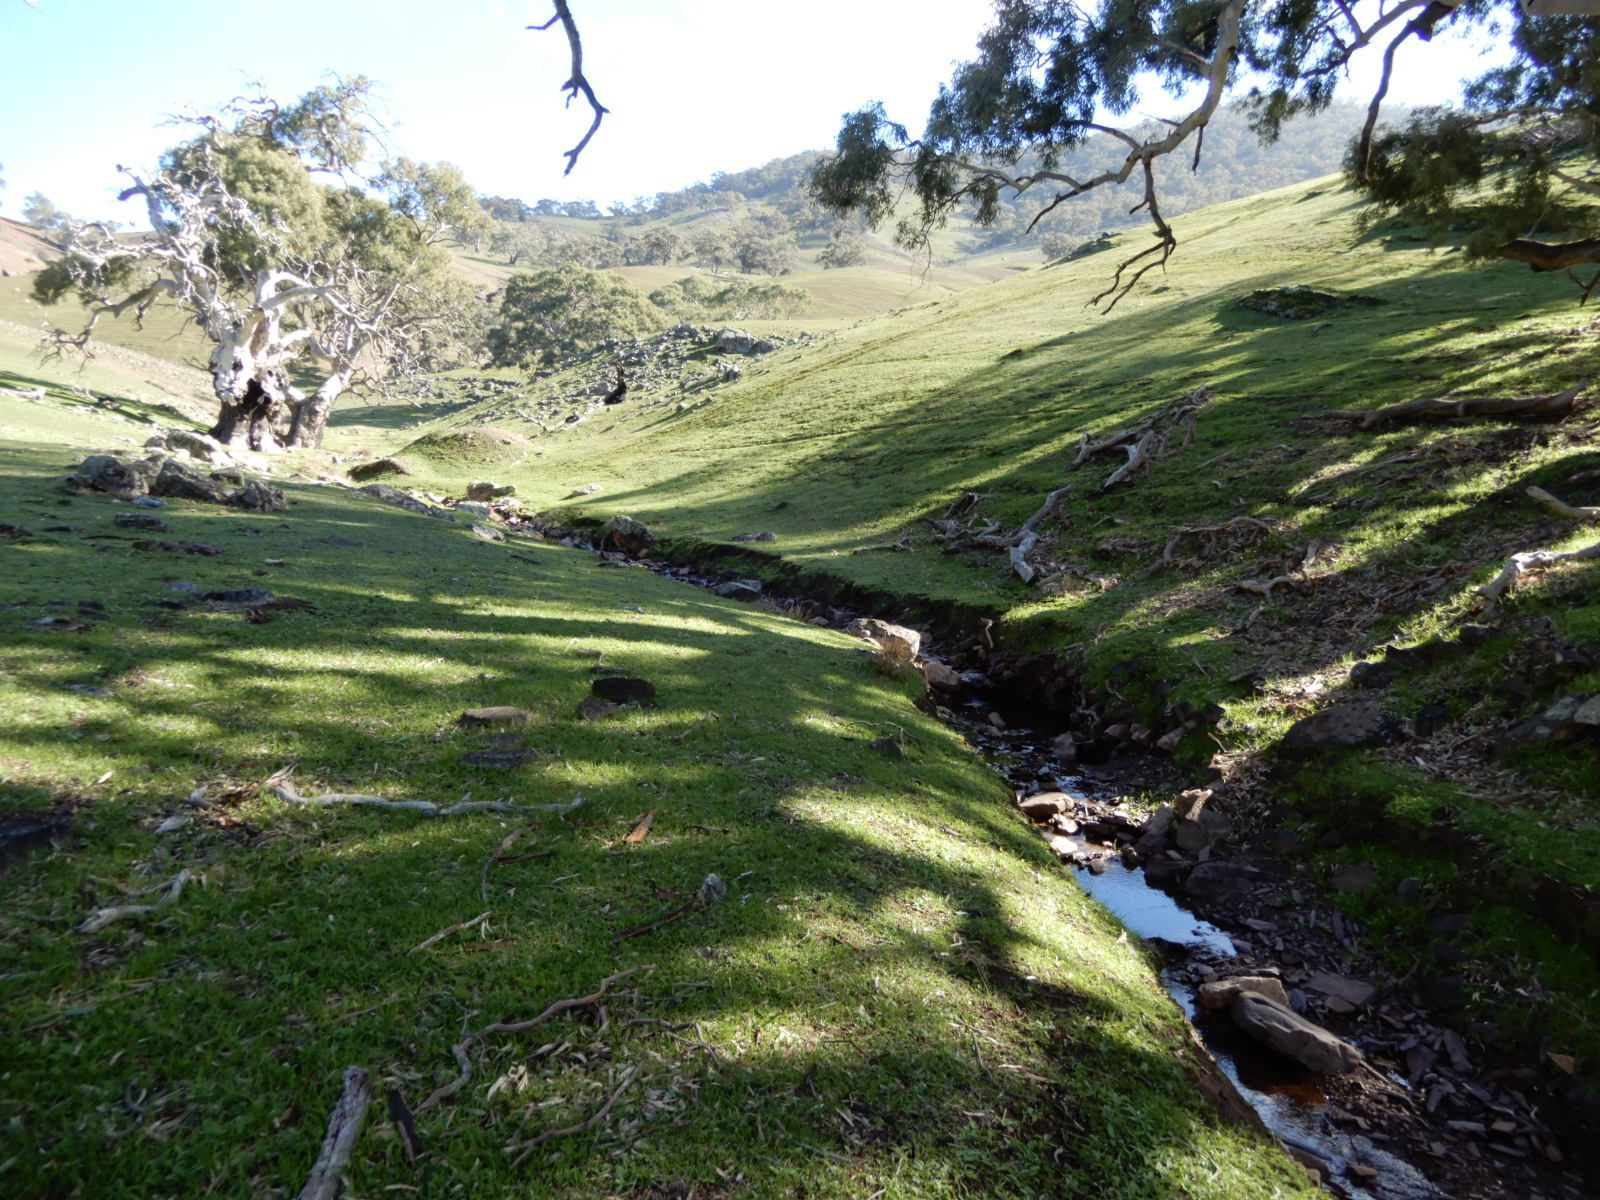 Sold Rural Property Broadview Track Wilmington Sa 5485 Nov 1 Images, Photos, Reviews